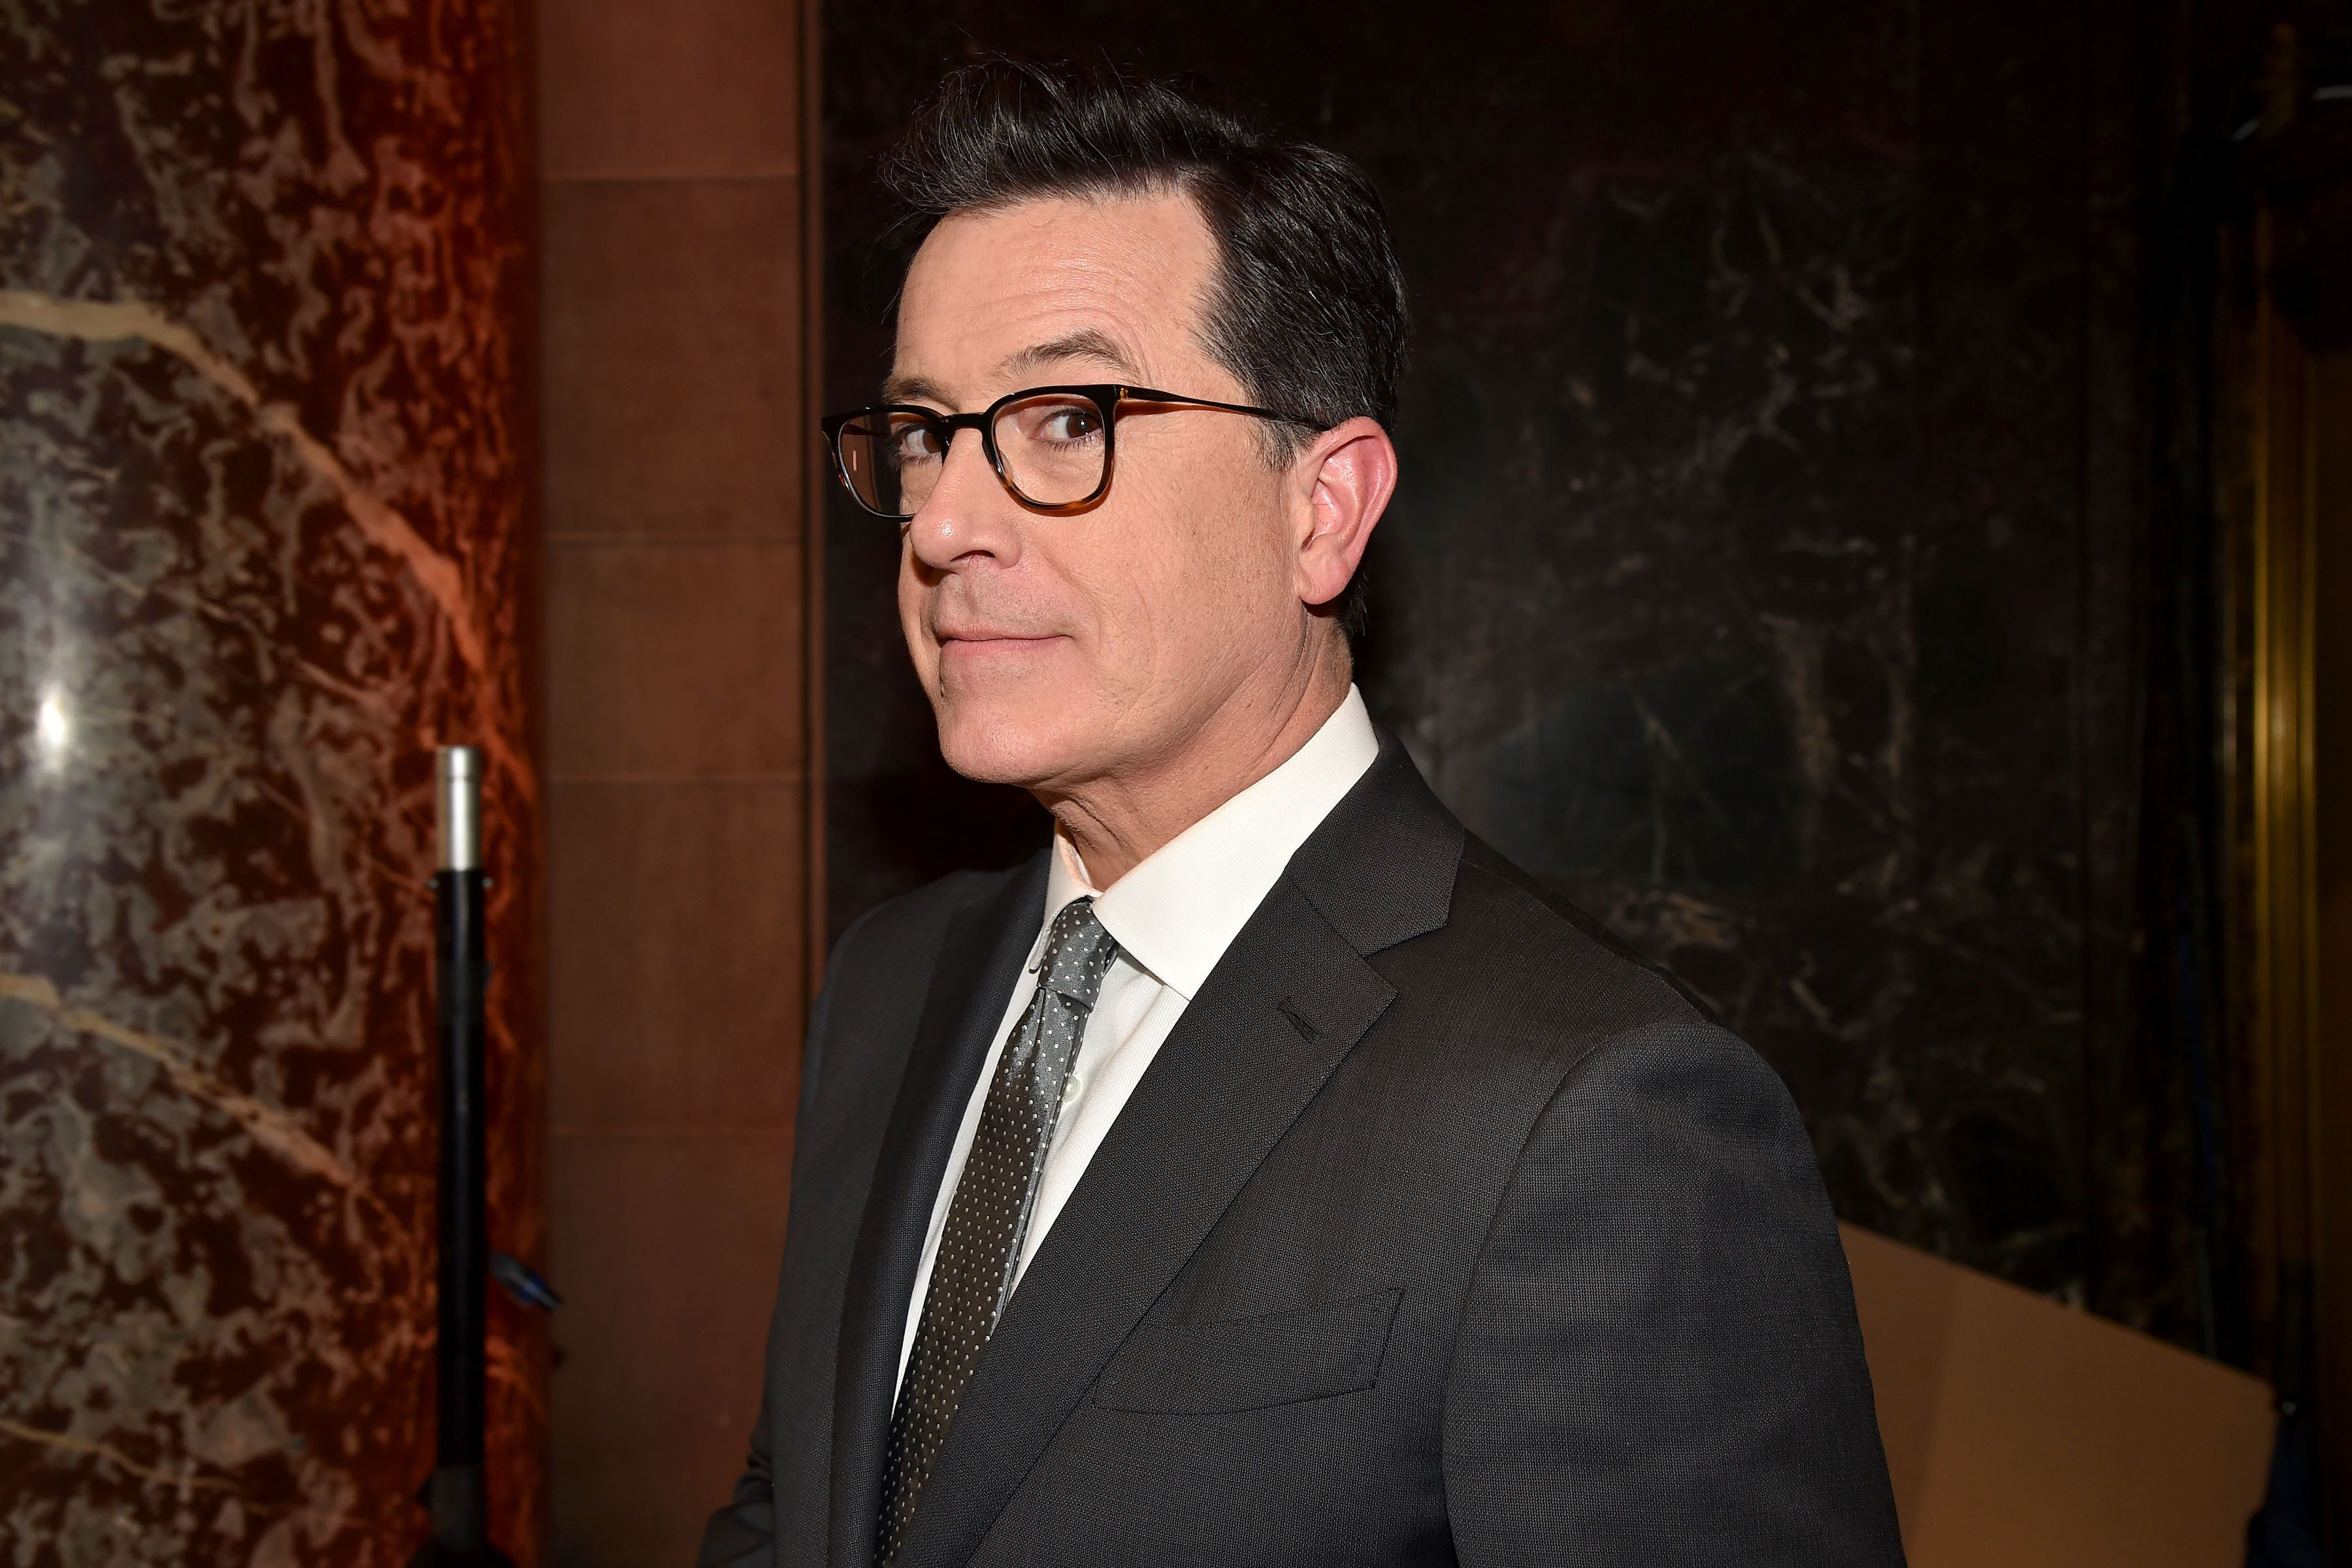 NEW YORK, NY - JUNE 06: Stephen Colbert attends the Gordon Parks Foundation Awards Dinner & Auction at Cipriani 42nd Street on June 6, 2017 in New York City. (Photo by Patrick McMullan/Patrick McMullan via Getty Images)